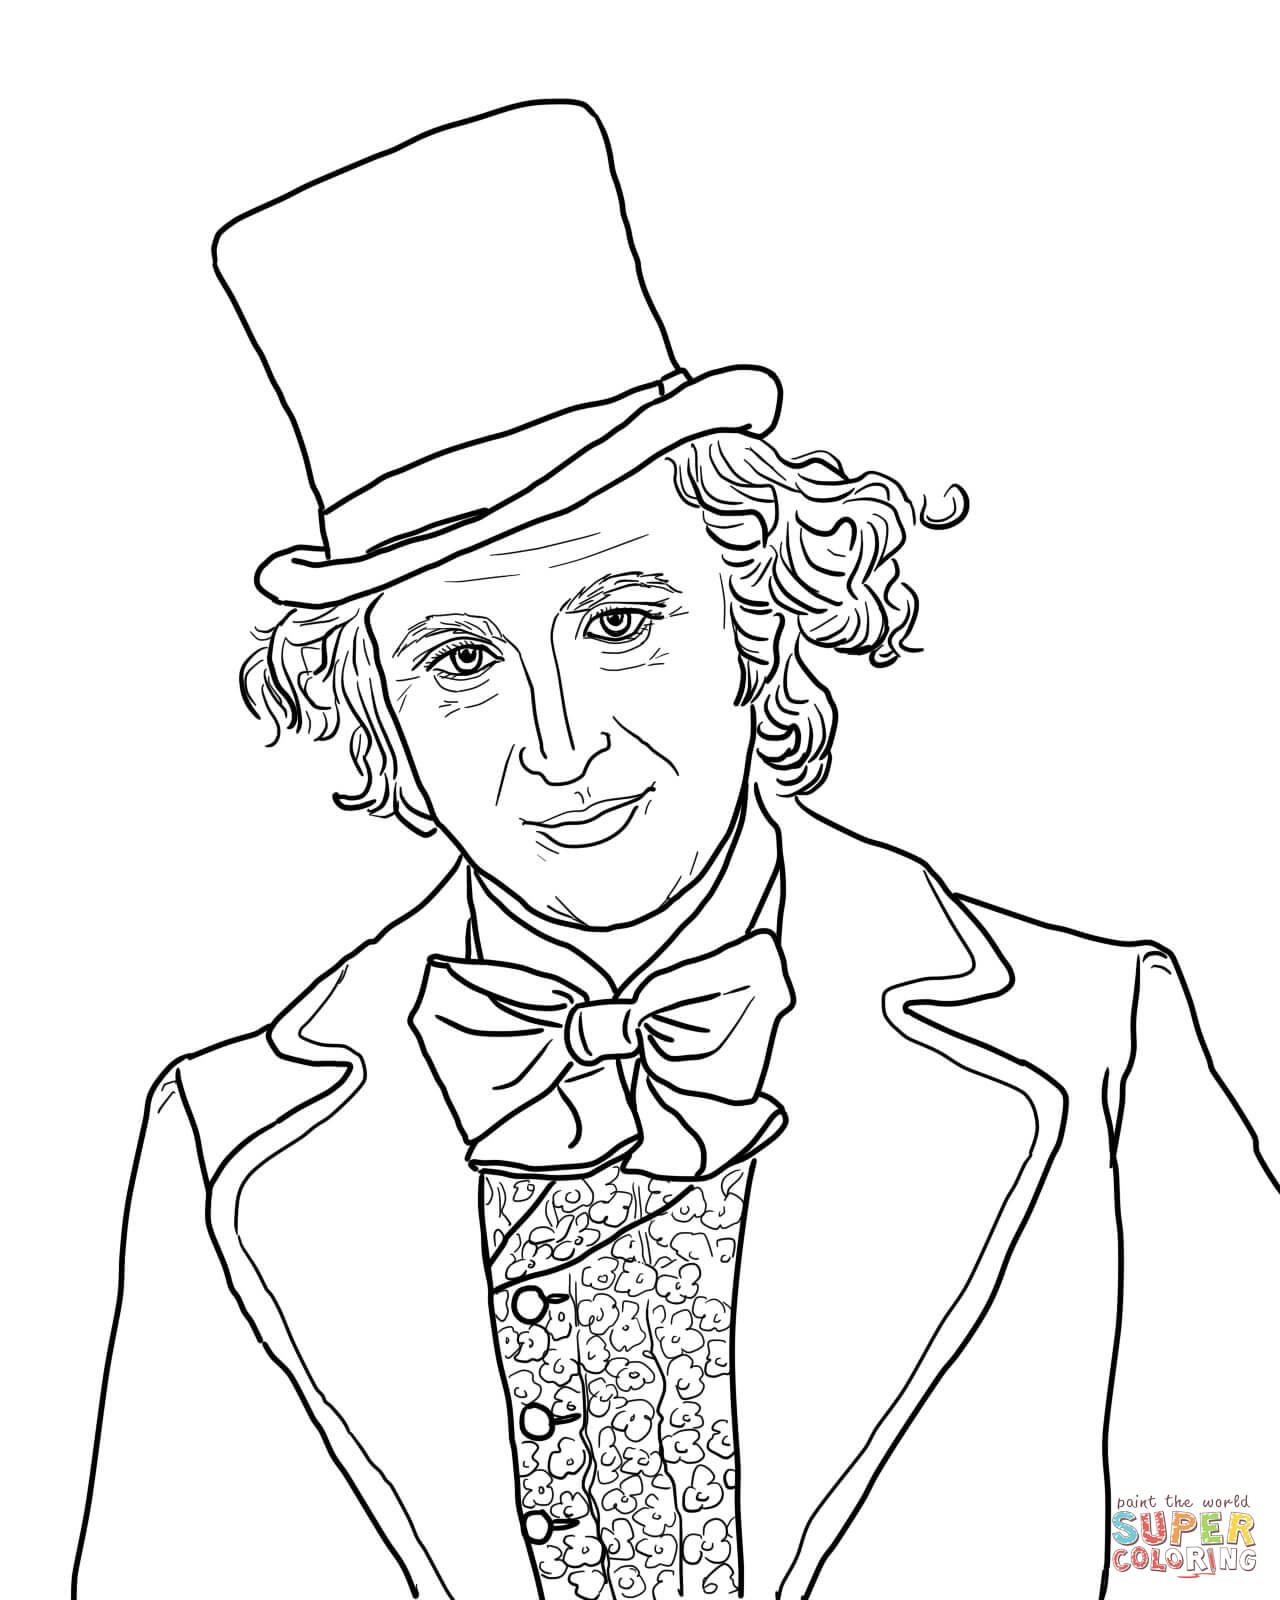 Willy Wonka With Gene Wilder Coloring Page